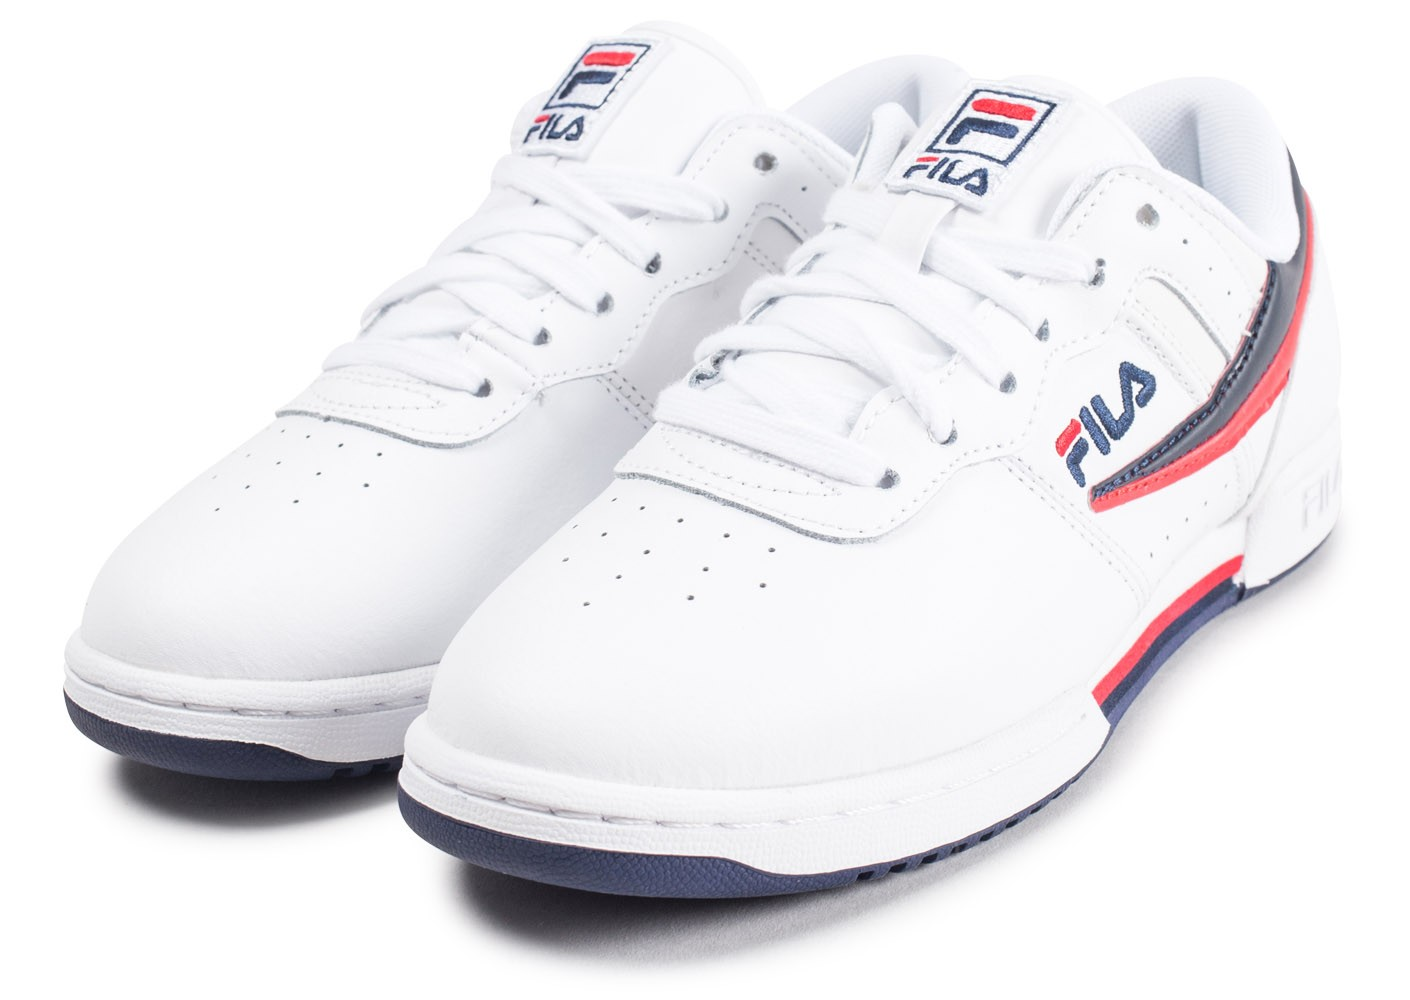 the latest 95e95 354a3 Fitness Fila Baskets Femme Chaussures Rouge Blanche Original Et OxBxqw4f